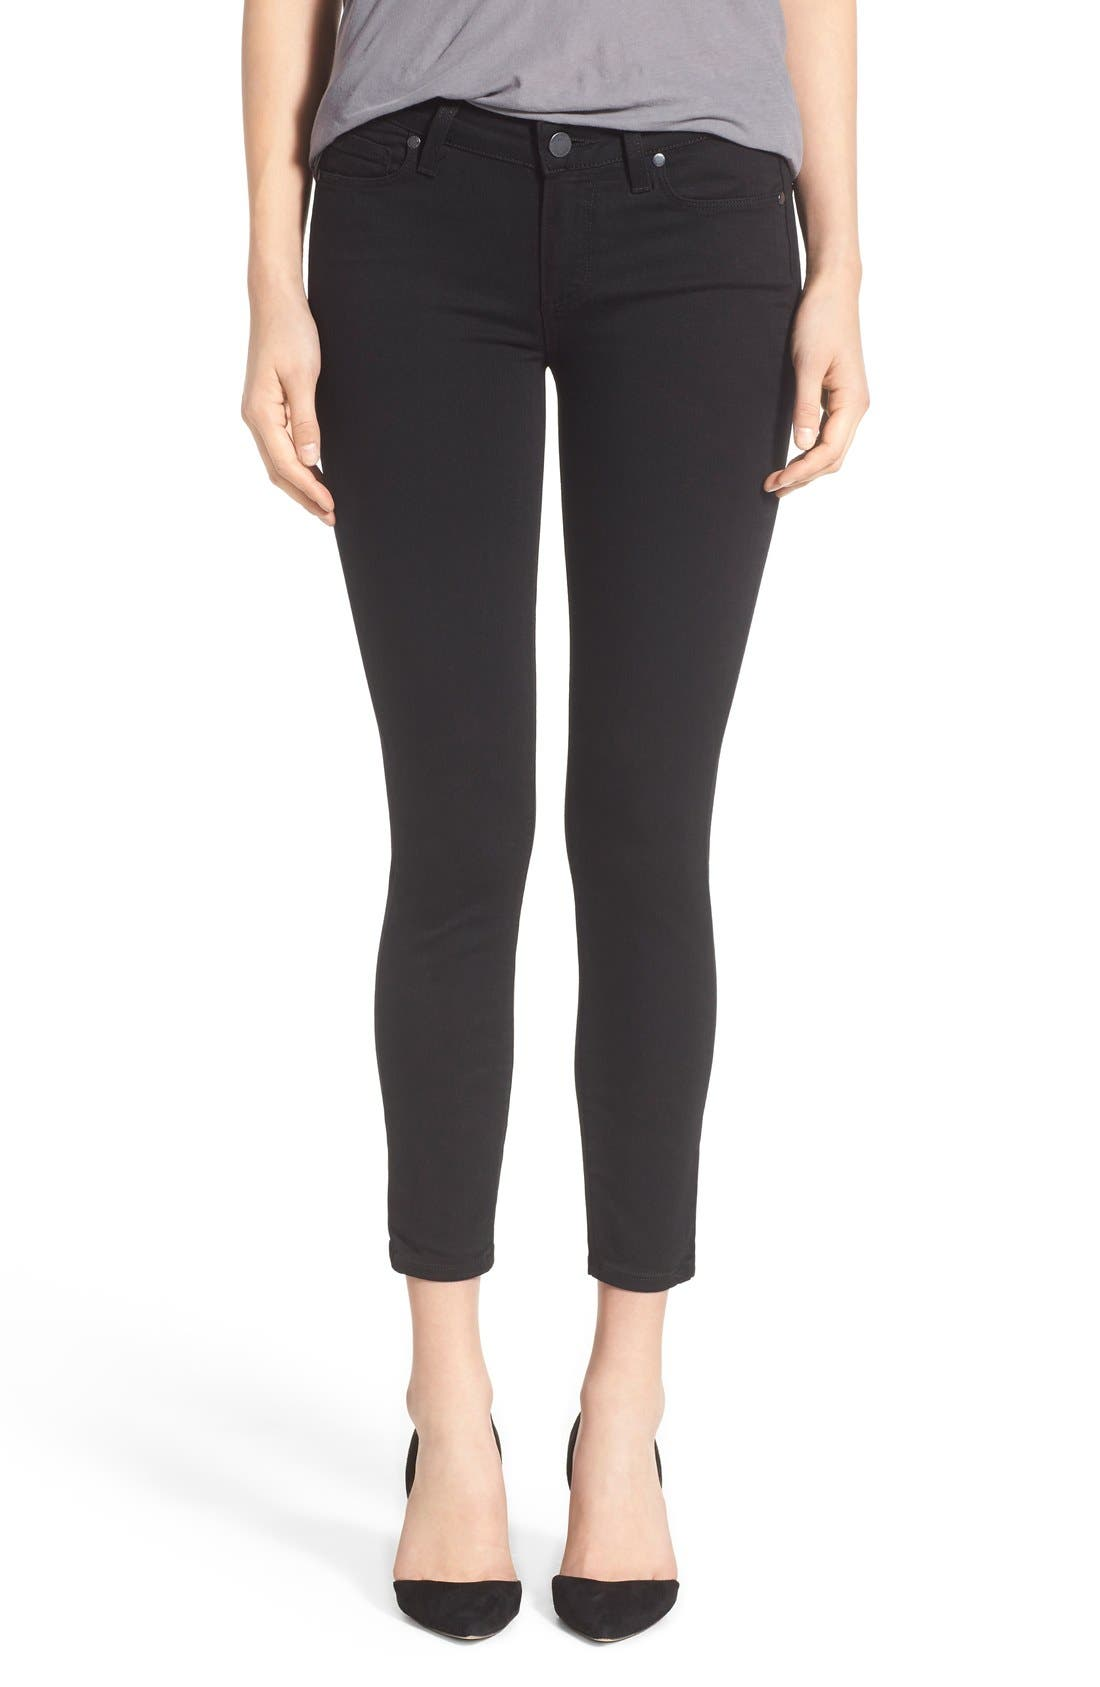 Transcend - Verdugo Crop Skinny Jeans,                             Main thumbnail 1, color,                             BLACK